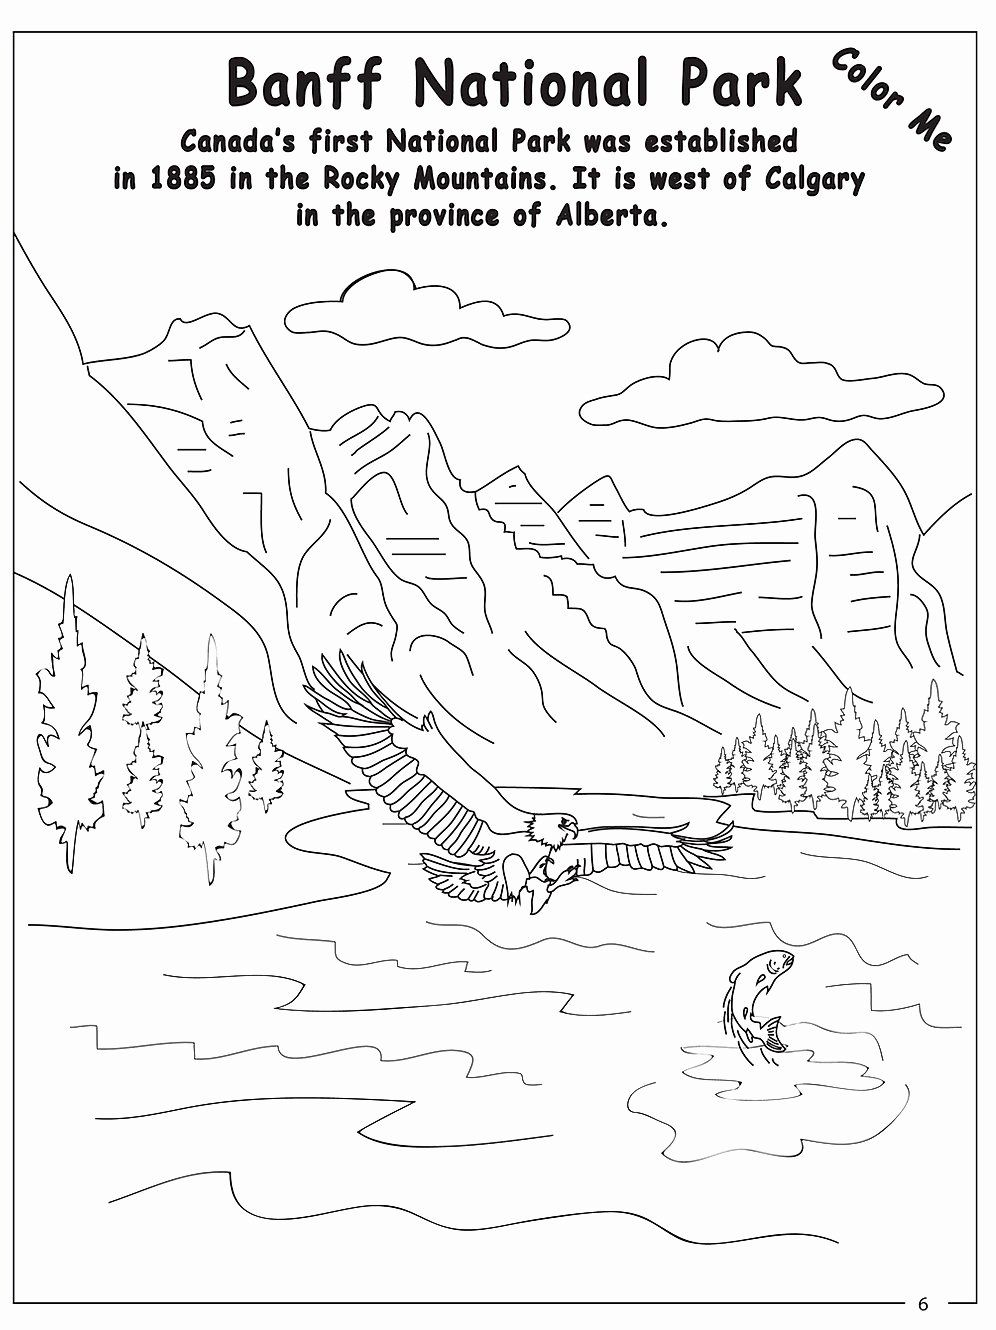 National Parks Coloring Book Inspirational Oh Canada Activity Ebook Download Anatomy Coloring Book Books For Teens Words Coloring Book